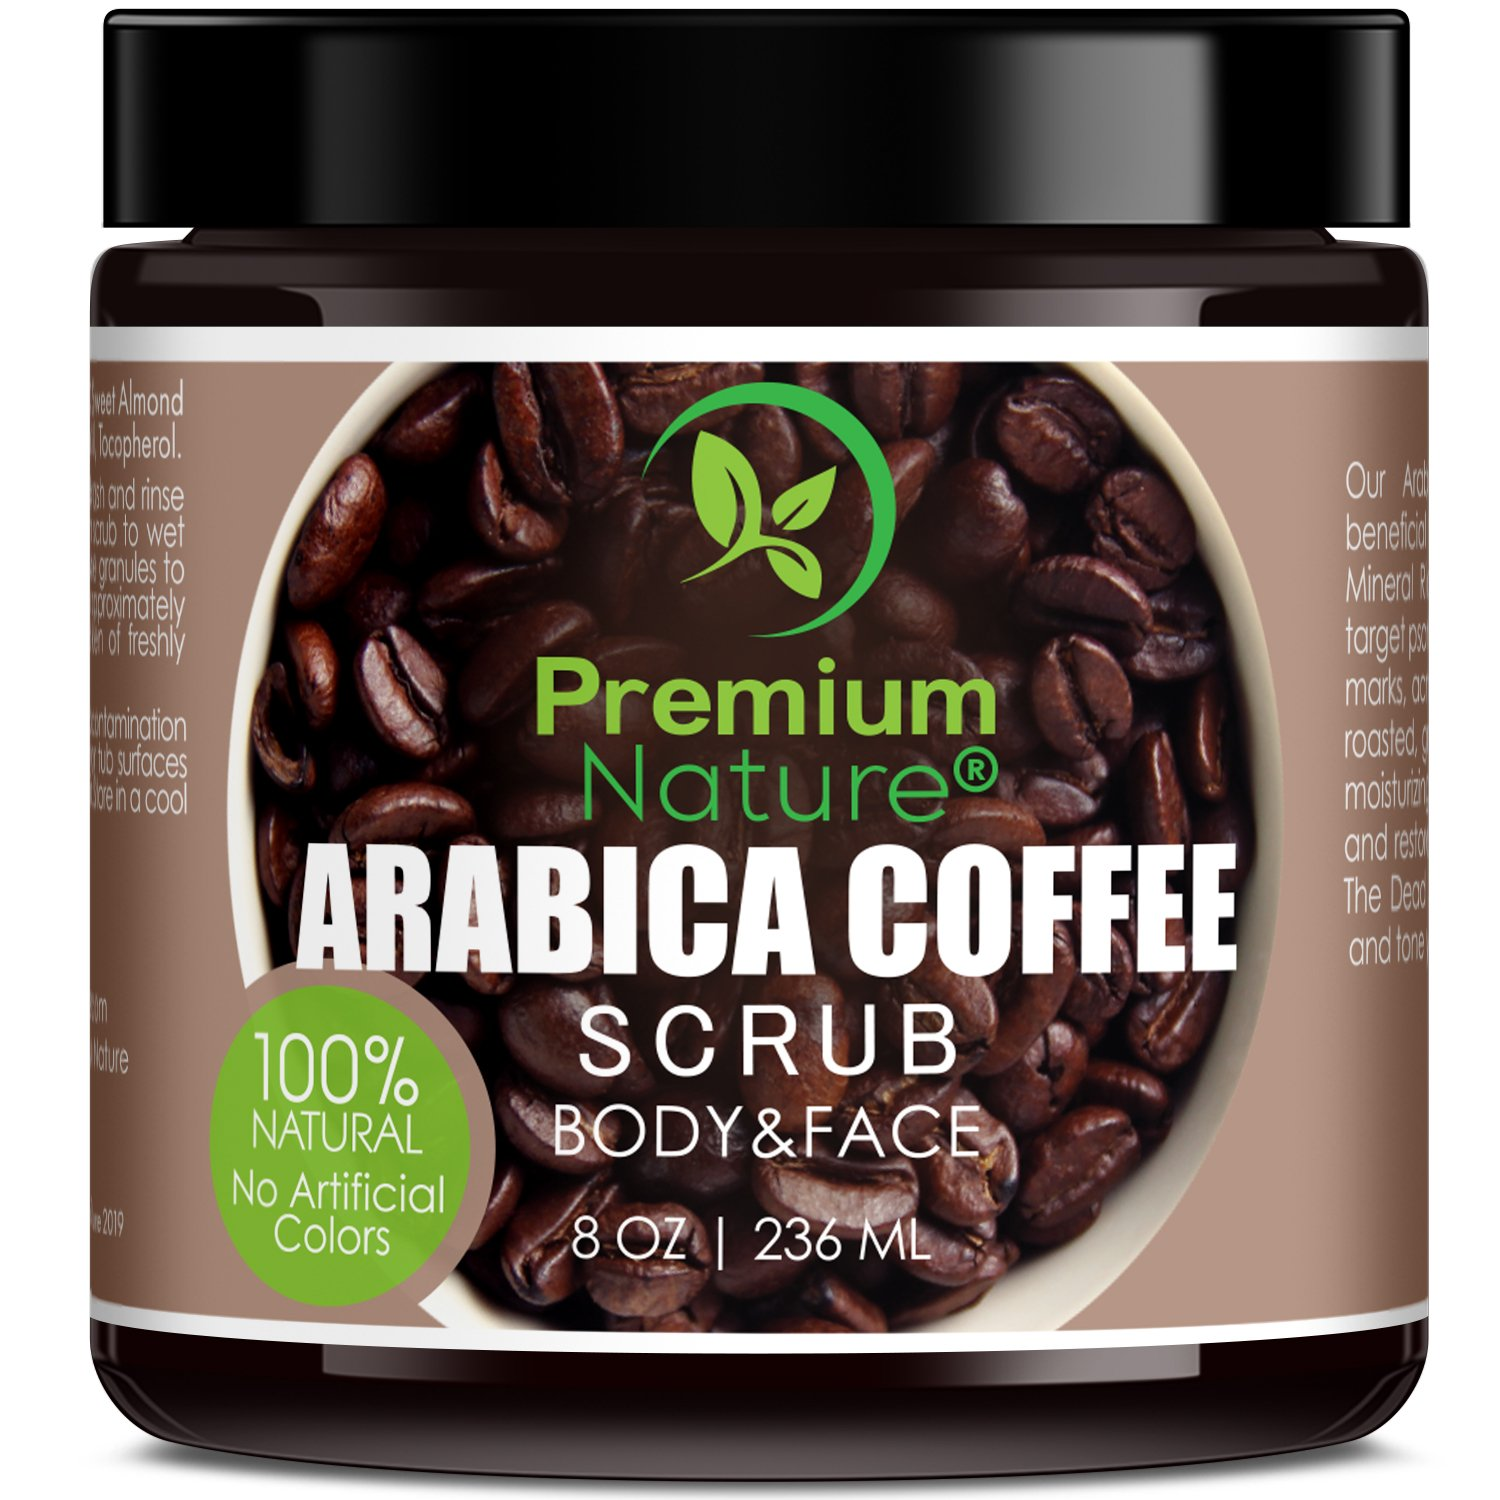 Exfoliating Arabica Coffee Body Scrub – Best Skin Exfoliator for Face Hand Lip & Body with Sea Salt & Shea Butter, Acne & Eczema Treatment, Exfoliate Moisturize, Stretch Mark Scar & Cellulite Remover